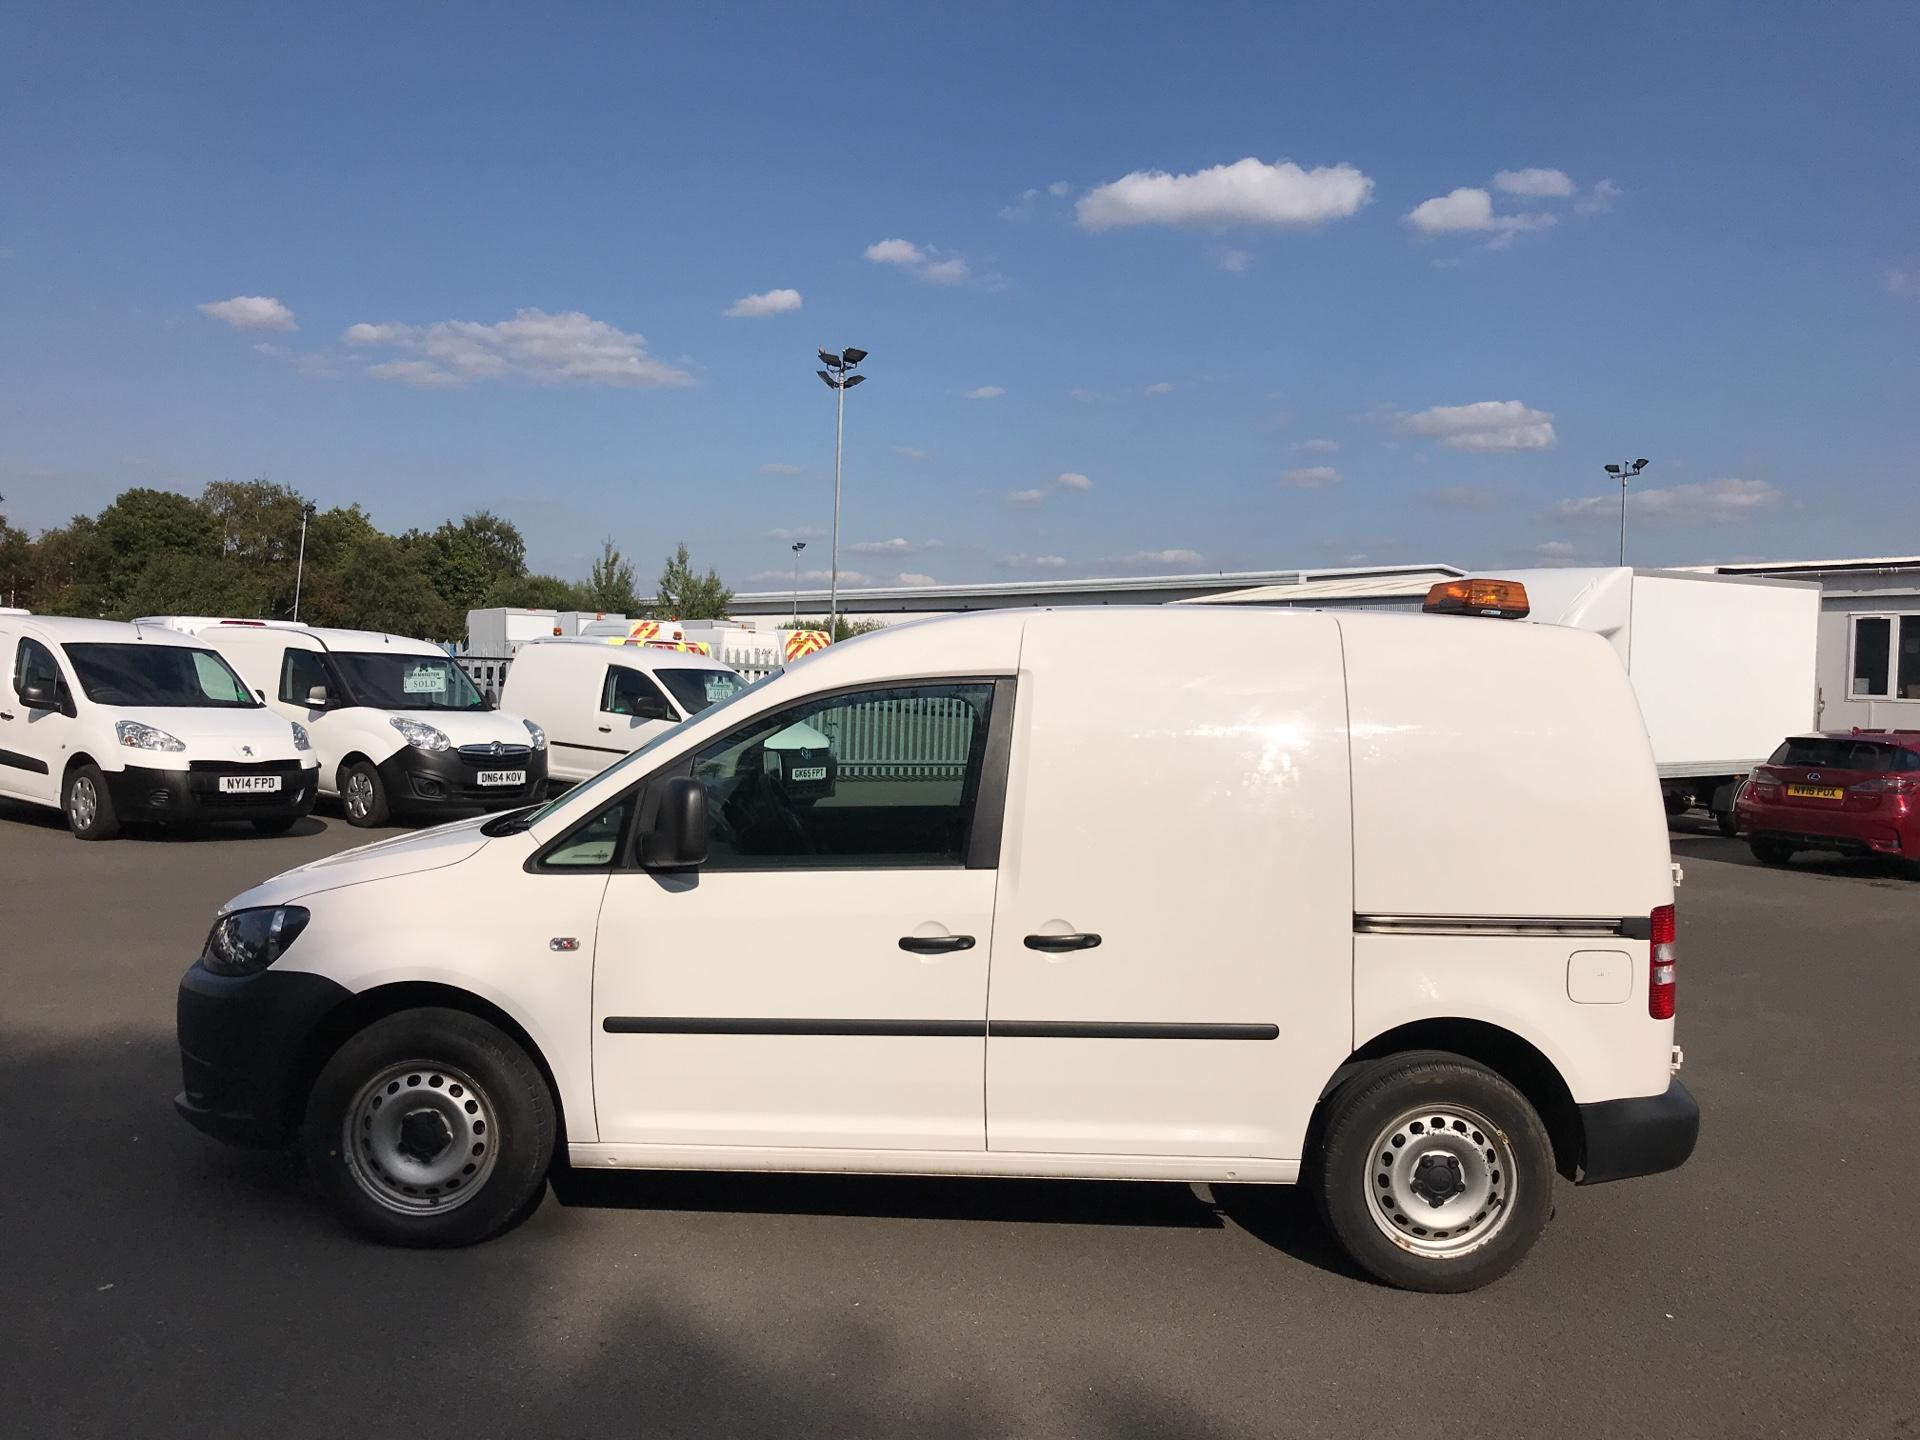 2015 Volkswagen Caddy  1.6 102PS STARTLINE EURO 5  *VALUE RANGE VEHICLE - CONDITION REFLECTED IN PRICE*  (GM15VLN) Image 6